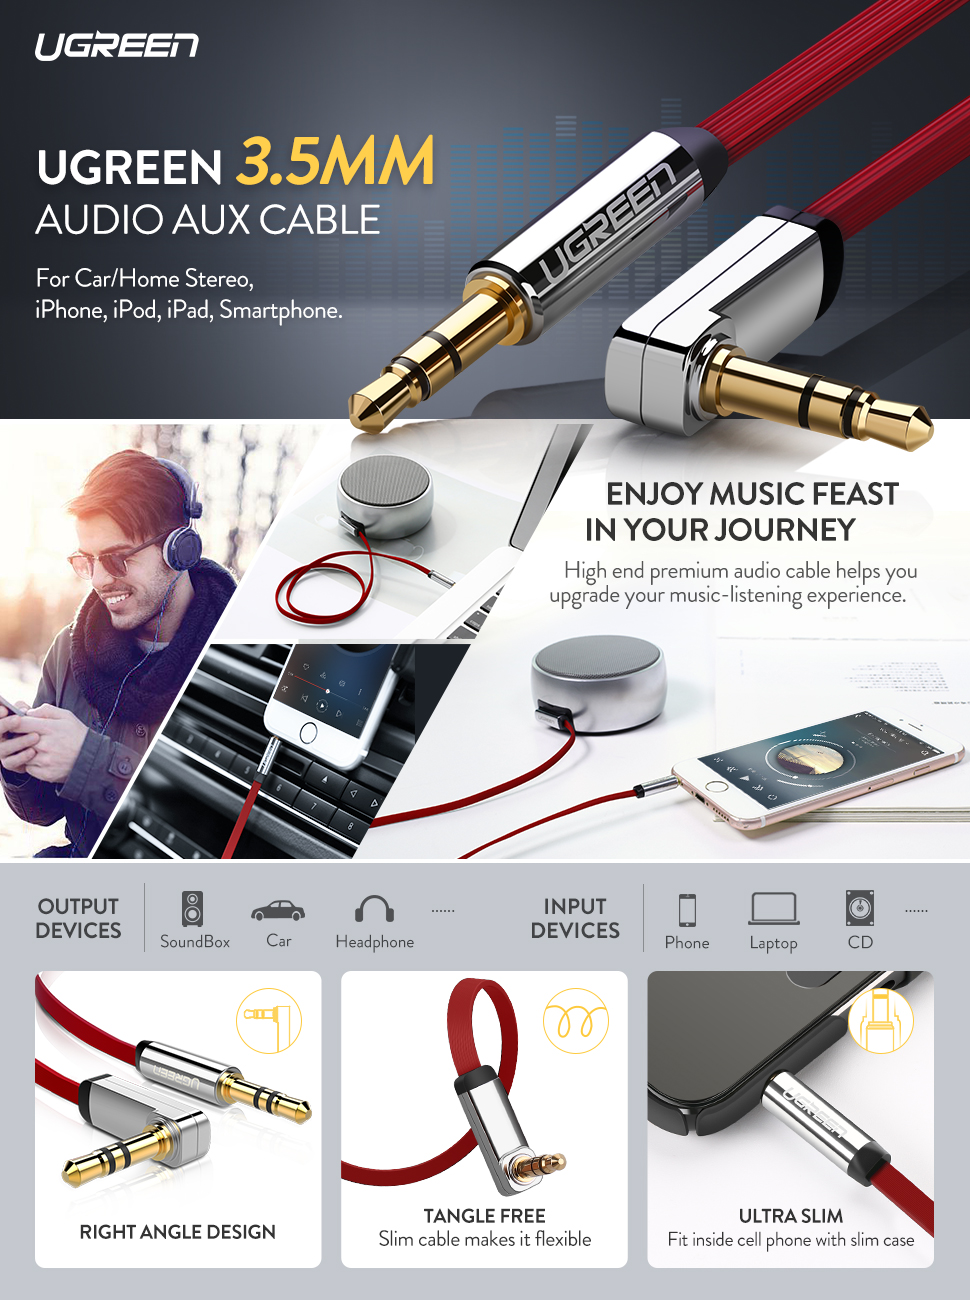 Speakers UGREEN 3.5mm Audio Cable iPhone 1.5FT iPad 24K Gold Plated Male to Male Black Stereo Aux Jack to Jack Cable 90 Degree Right Angle Auxiliary Cord Compatible for Beats iPod Tablets